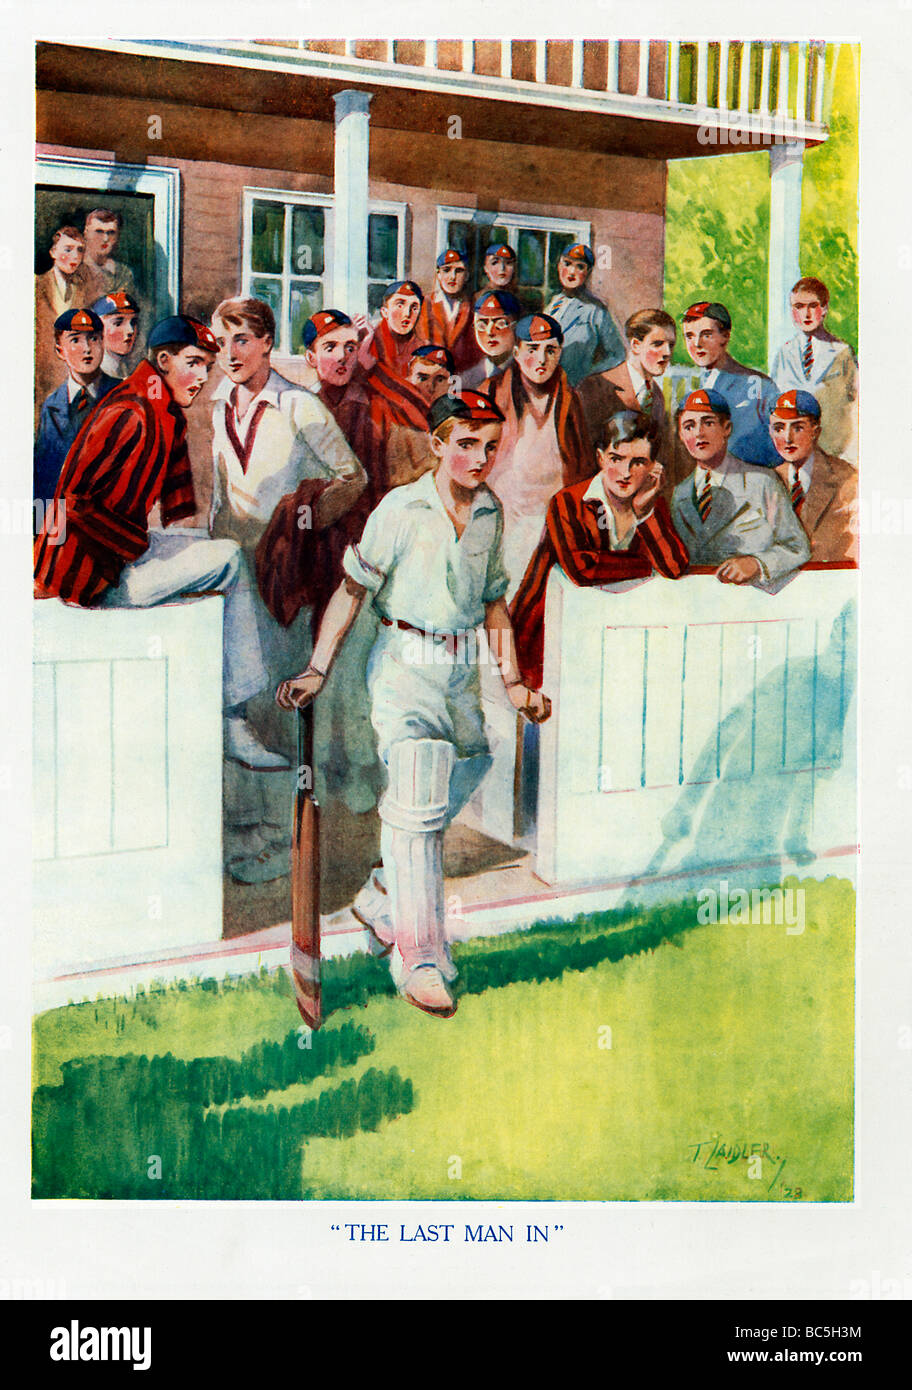 Last Man In 1920s illustration of a schoolboy cricket hero starting his long walk to the crease - Stock Image